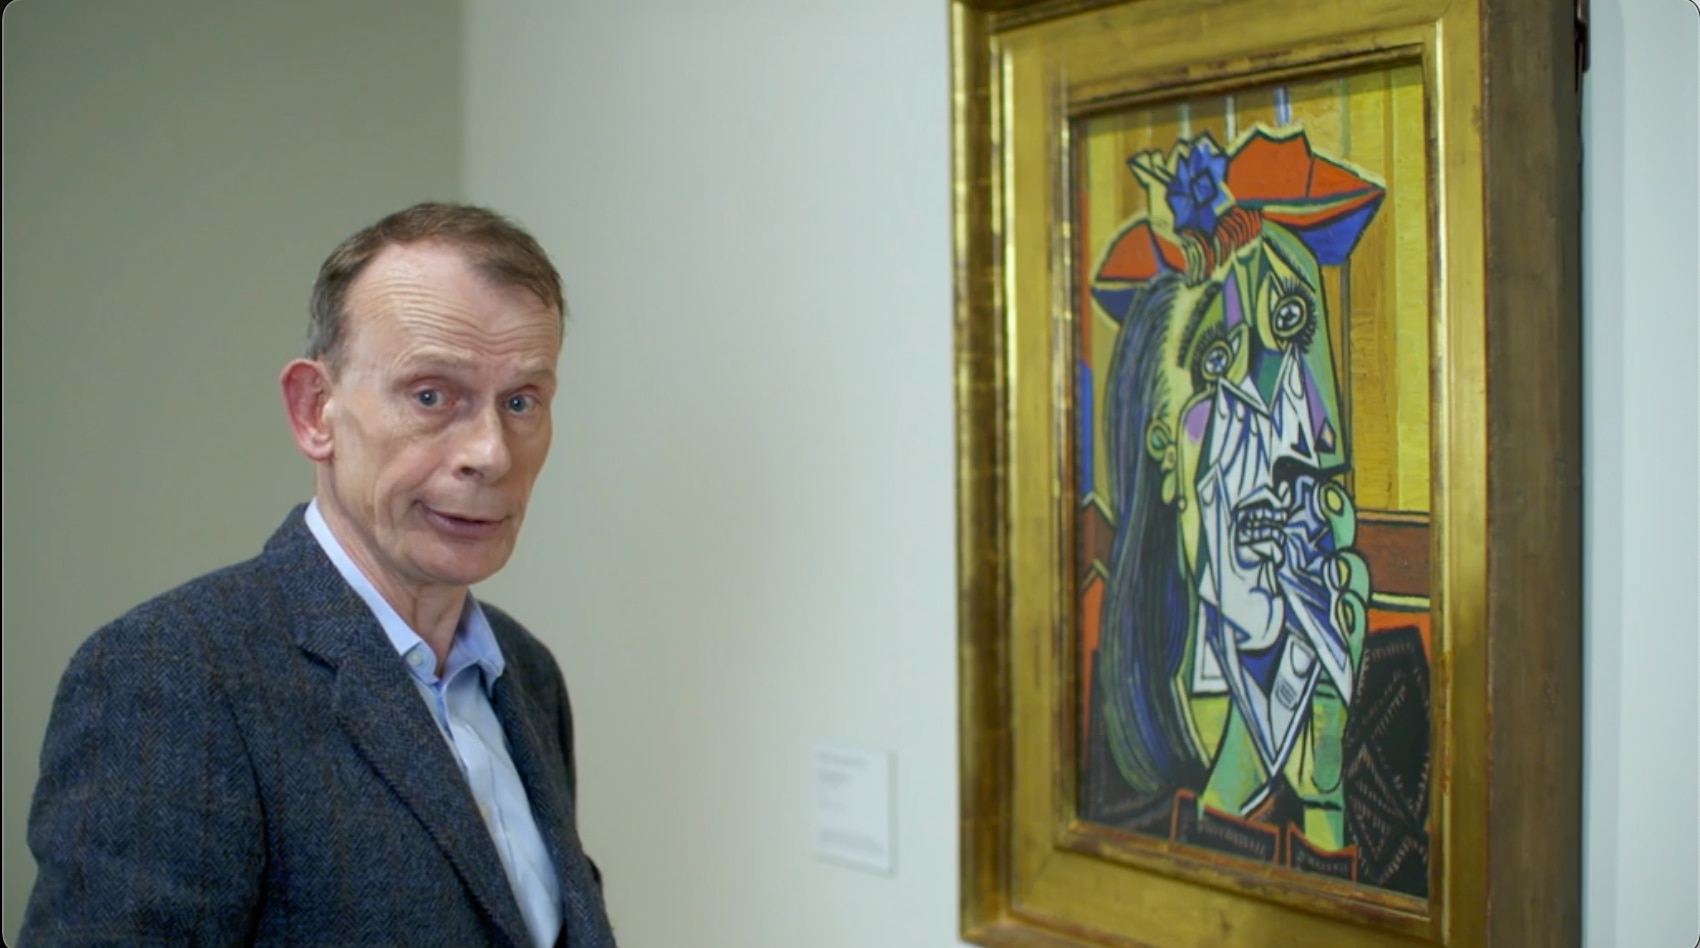 Andrew Marr looking at The Weeping Woman by Pablo Picasso